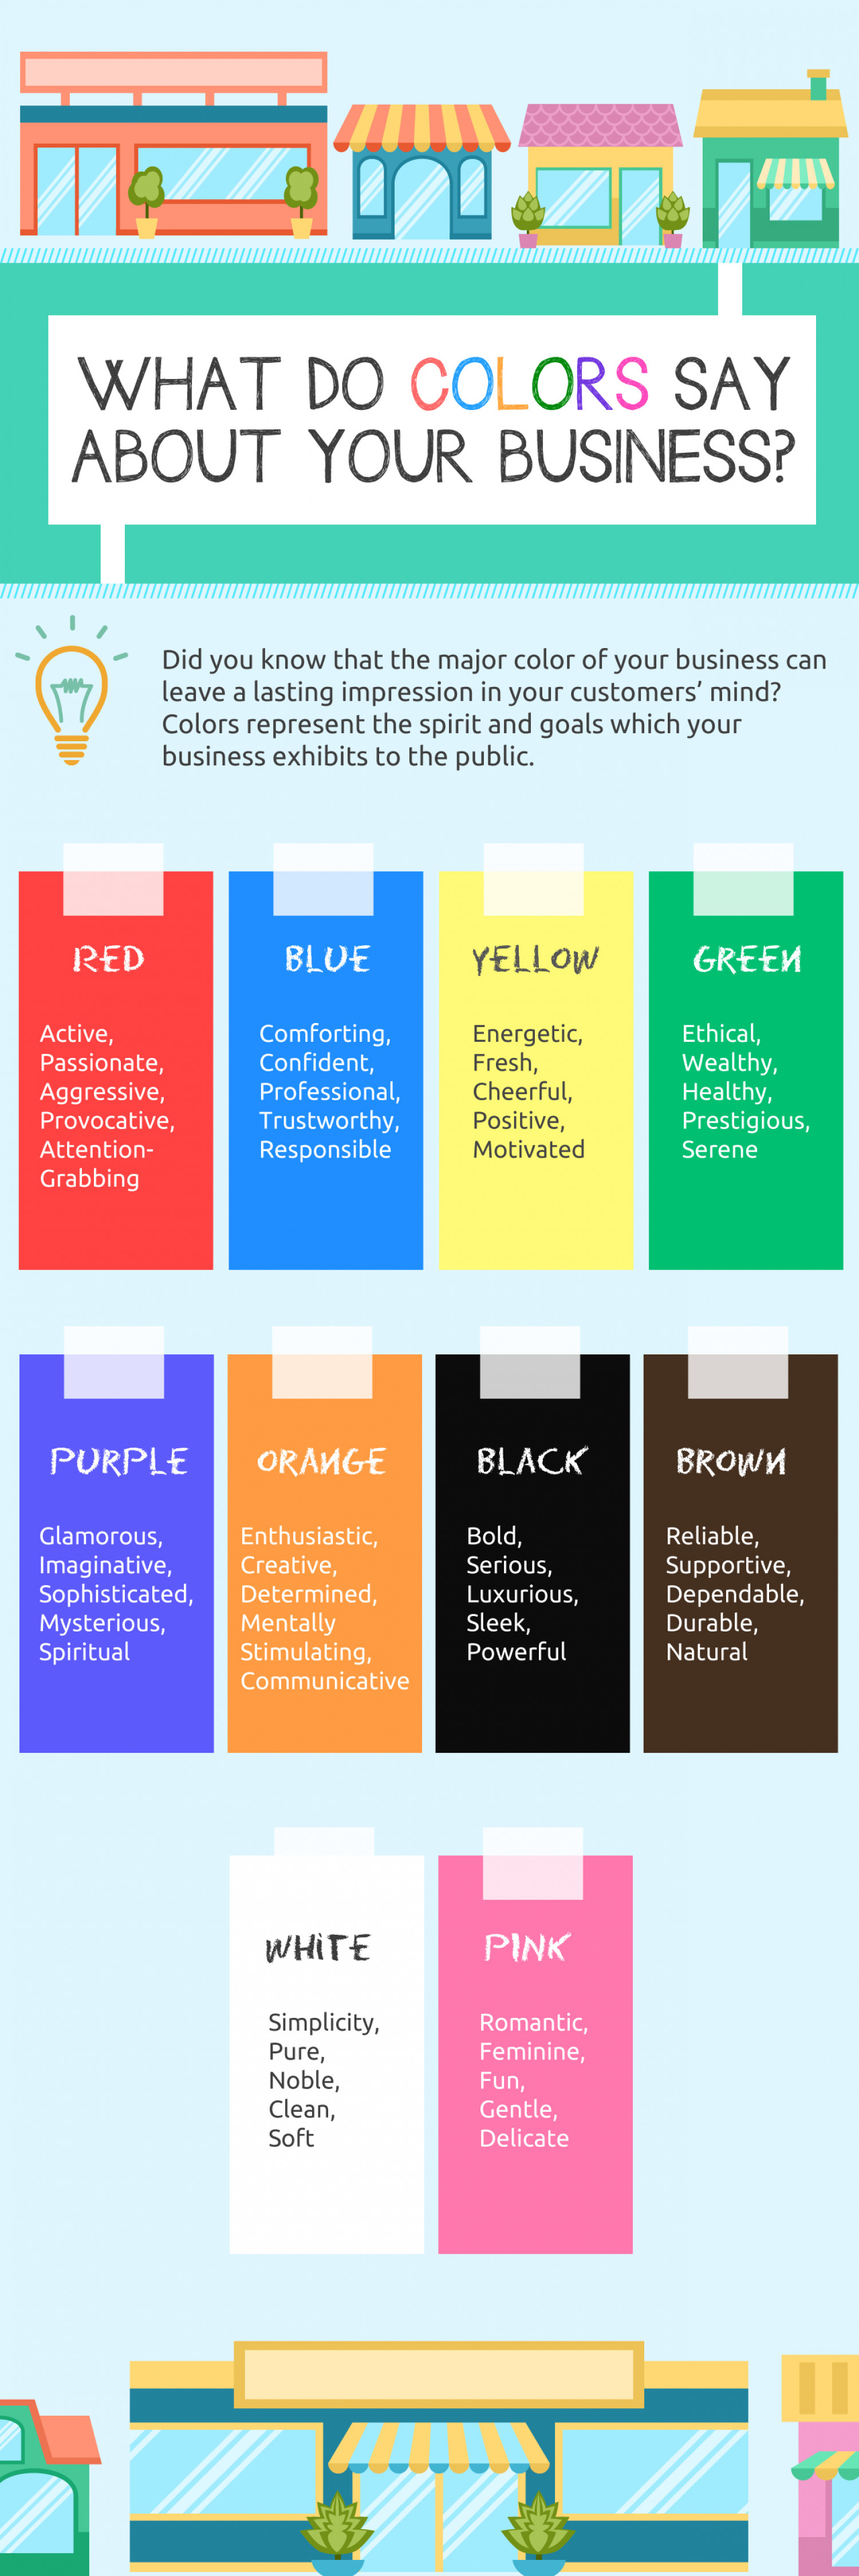 What Do Colors Say About Your Business Infographic